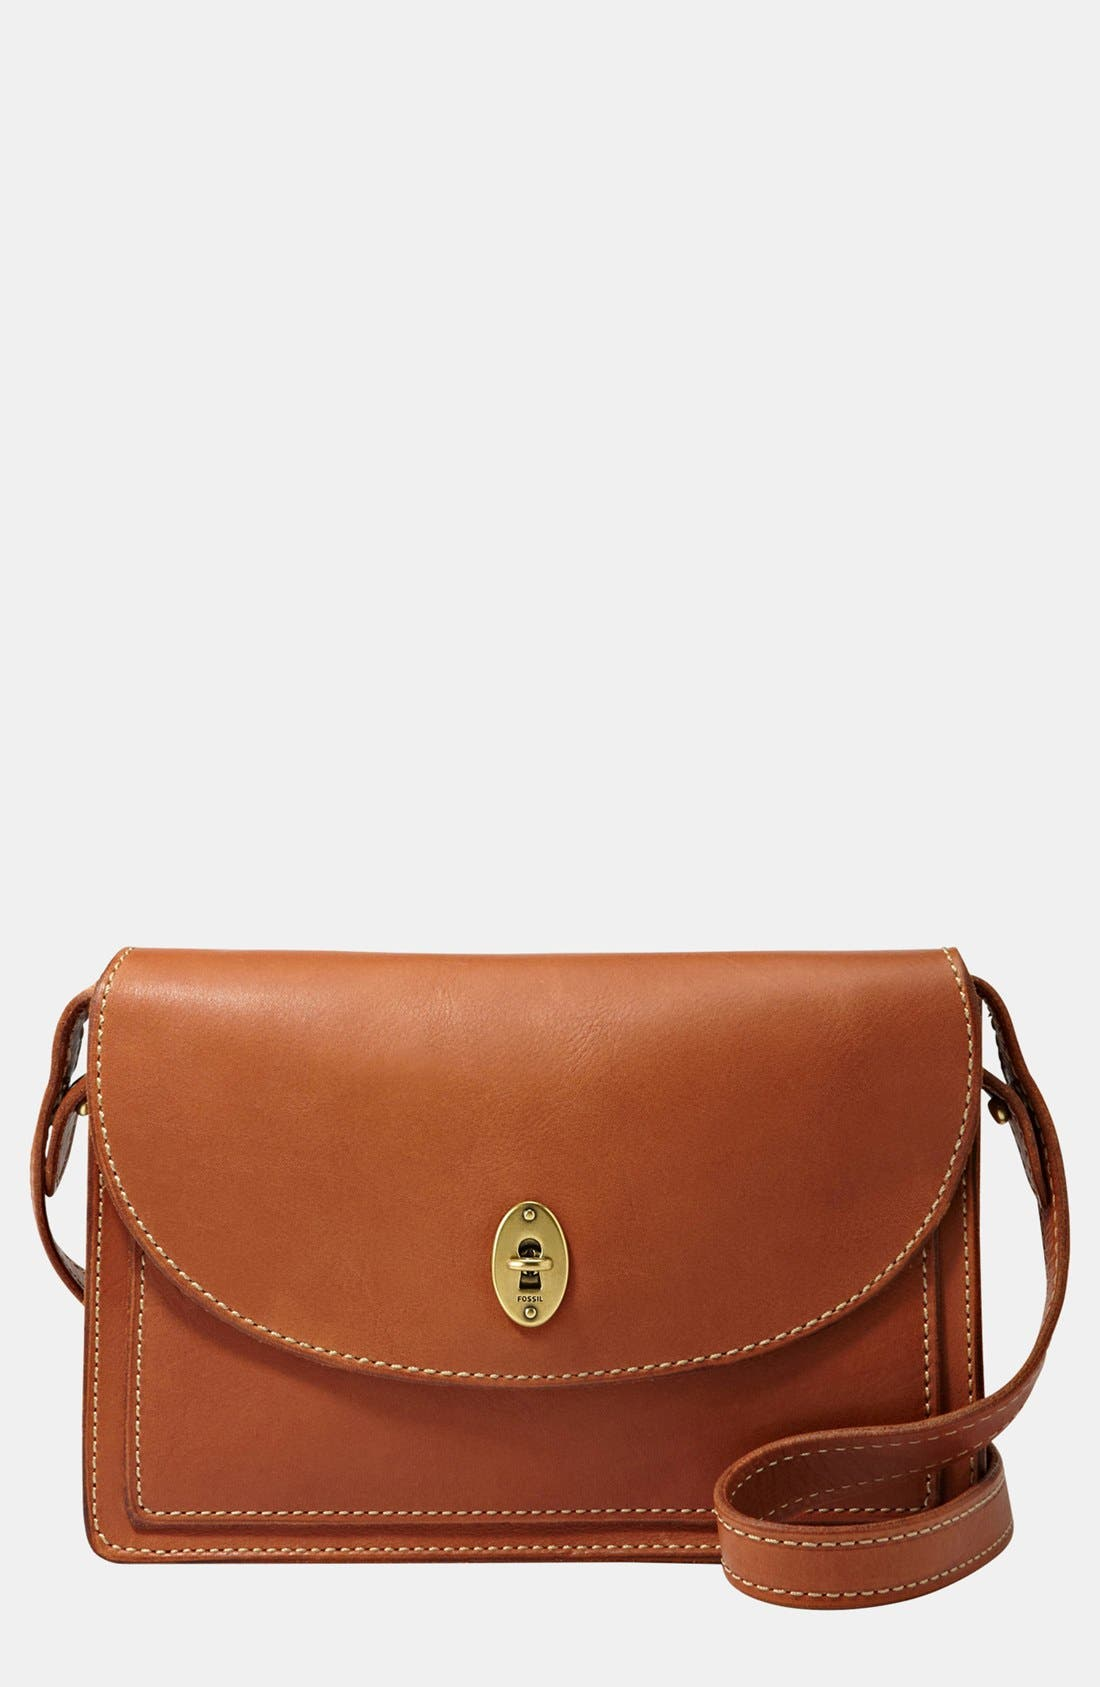 Main Image - Fossil 'Austin' Convertible Leather Clutch